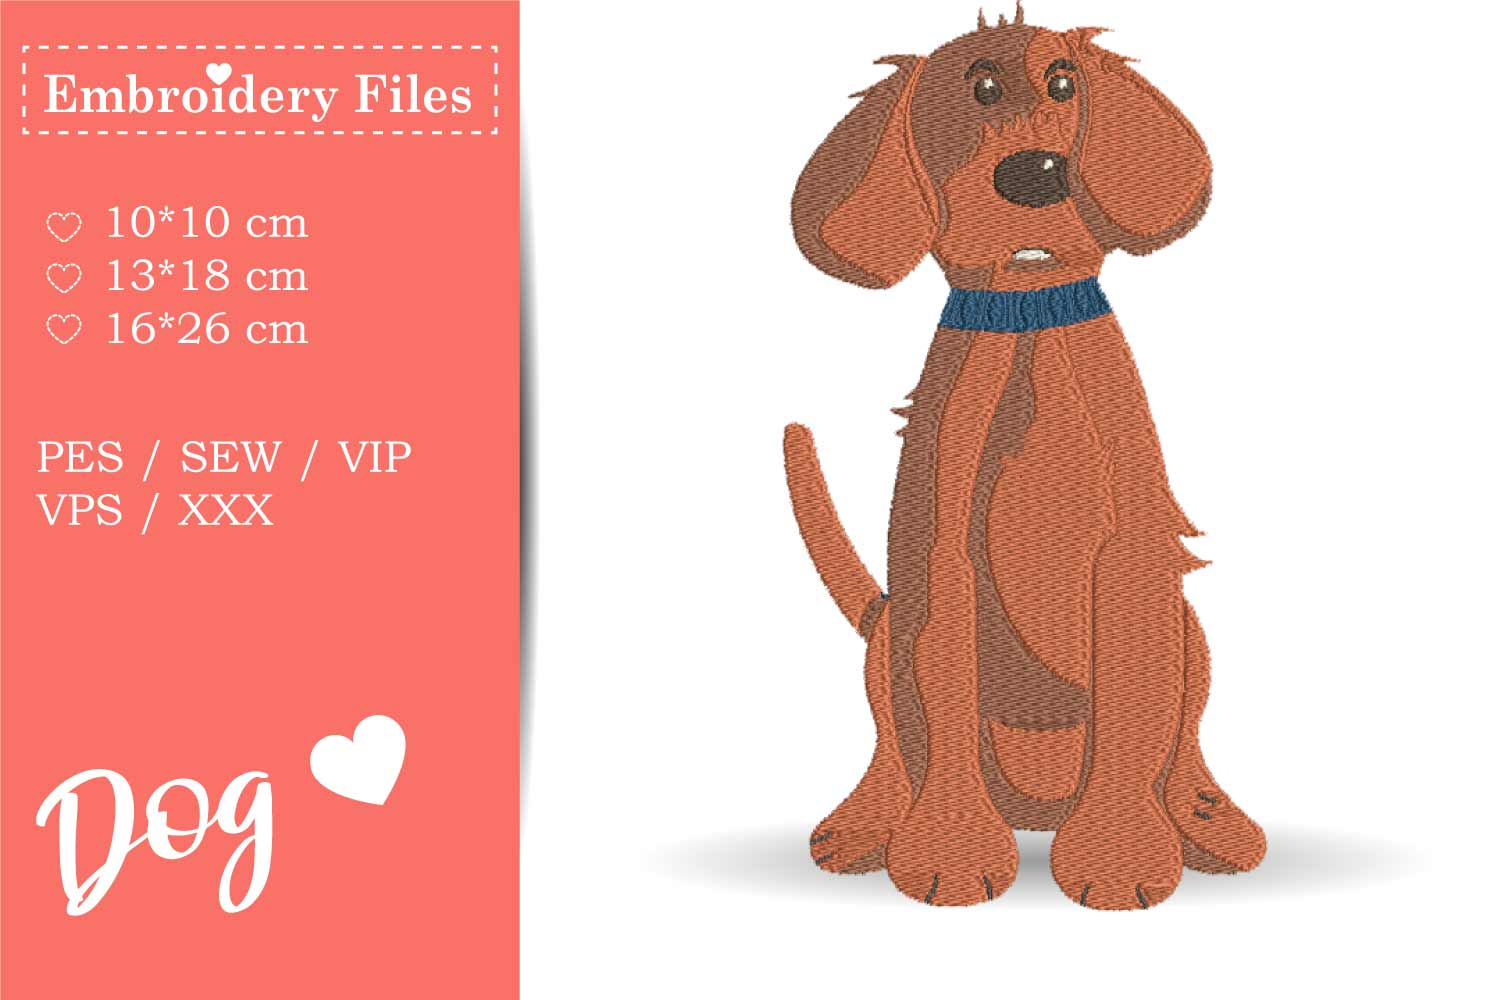 Dogs - Mini Bundle - Embroidery Files for Beginners example image 6